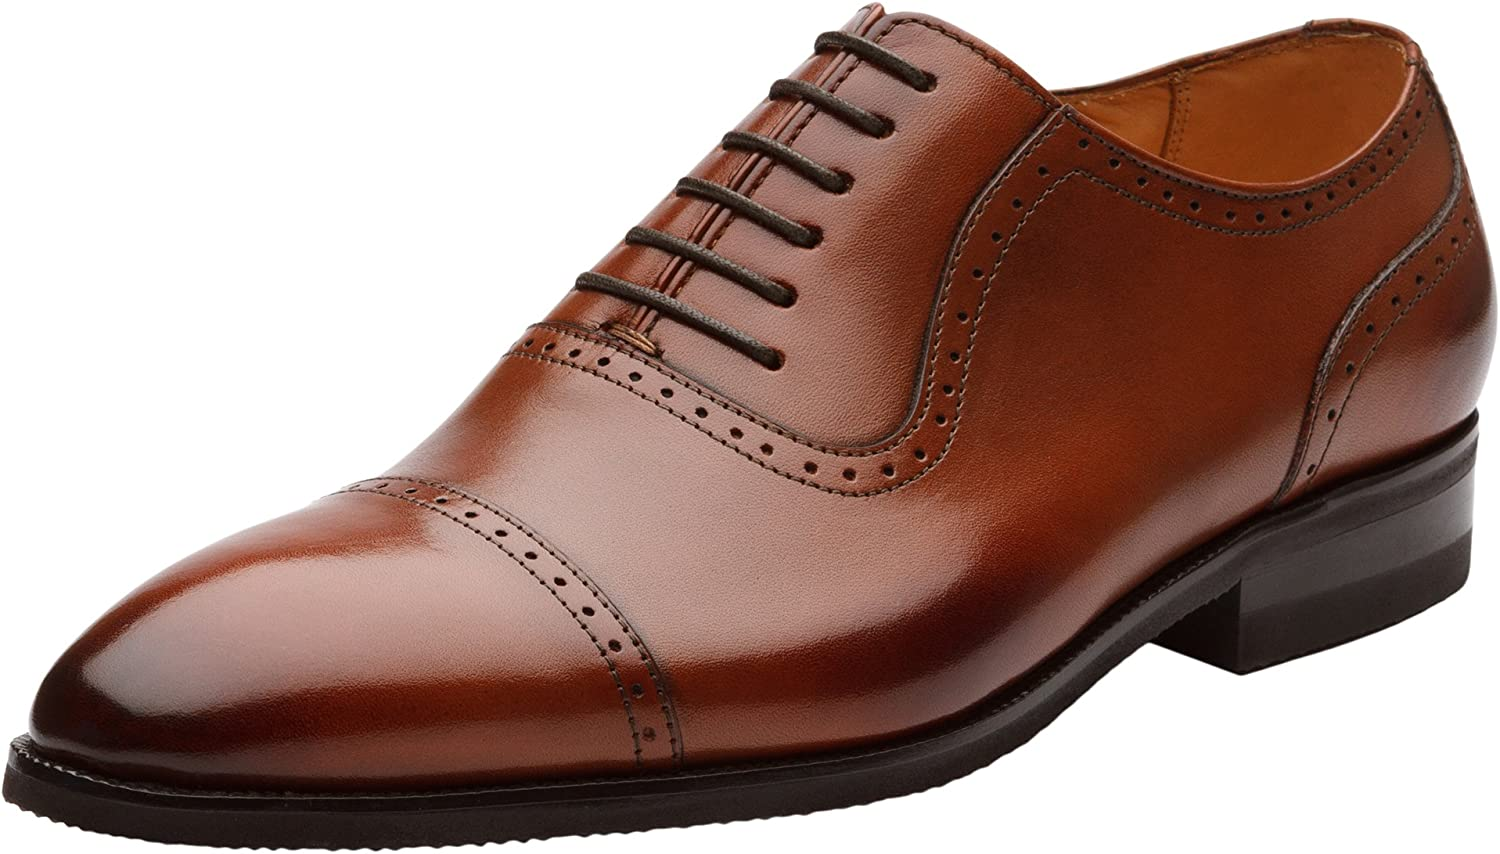 Dapper shoes Co. Handcrafted Men's Wingtip Brogue Genuine Leather Lined Perforated Oxfords shoes